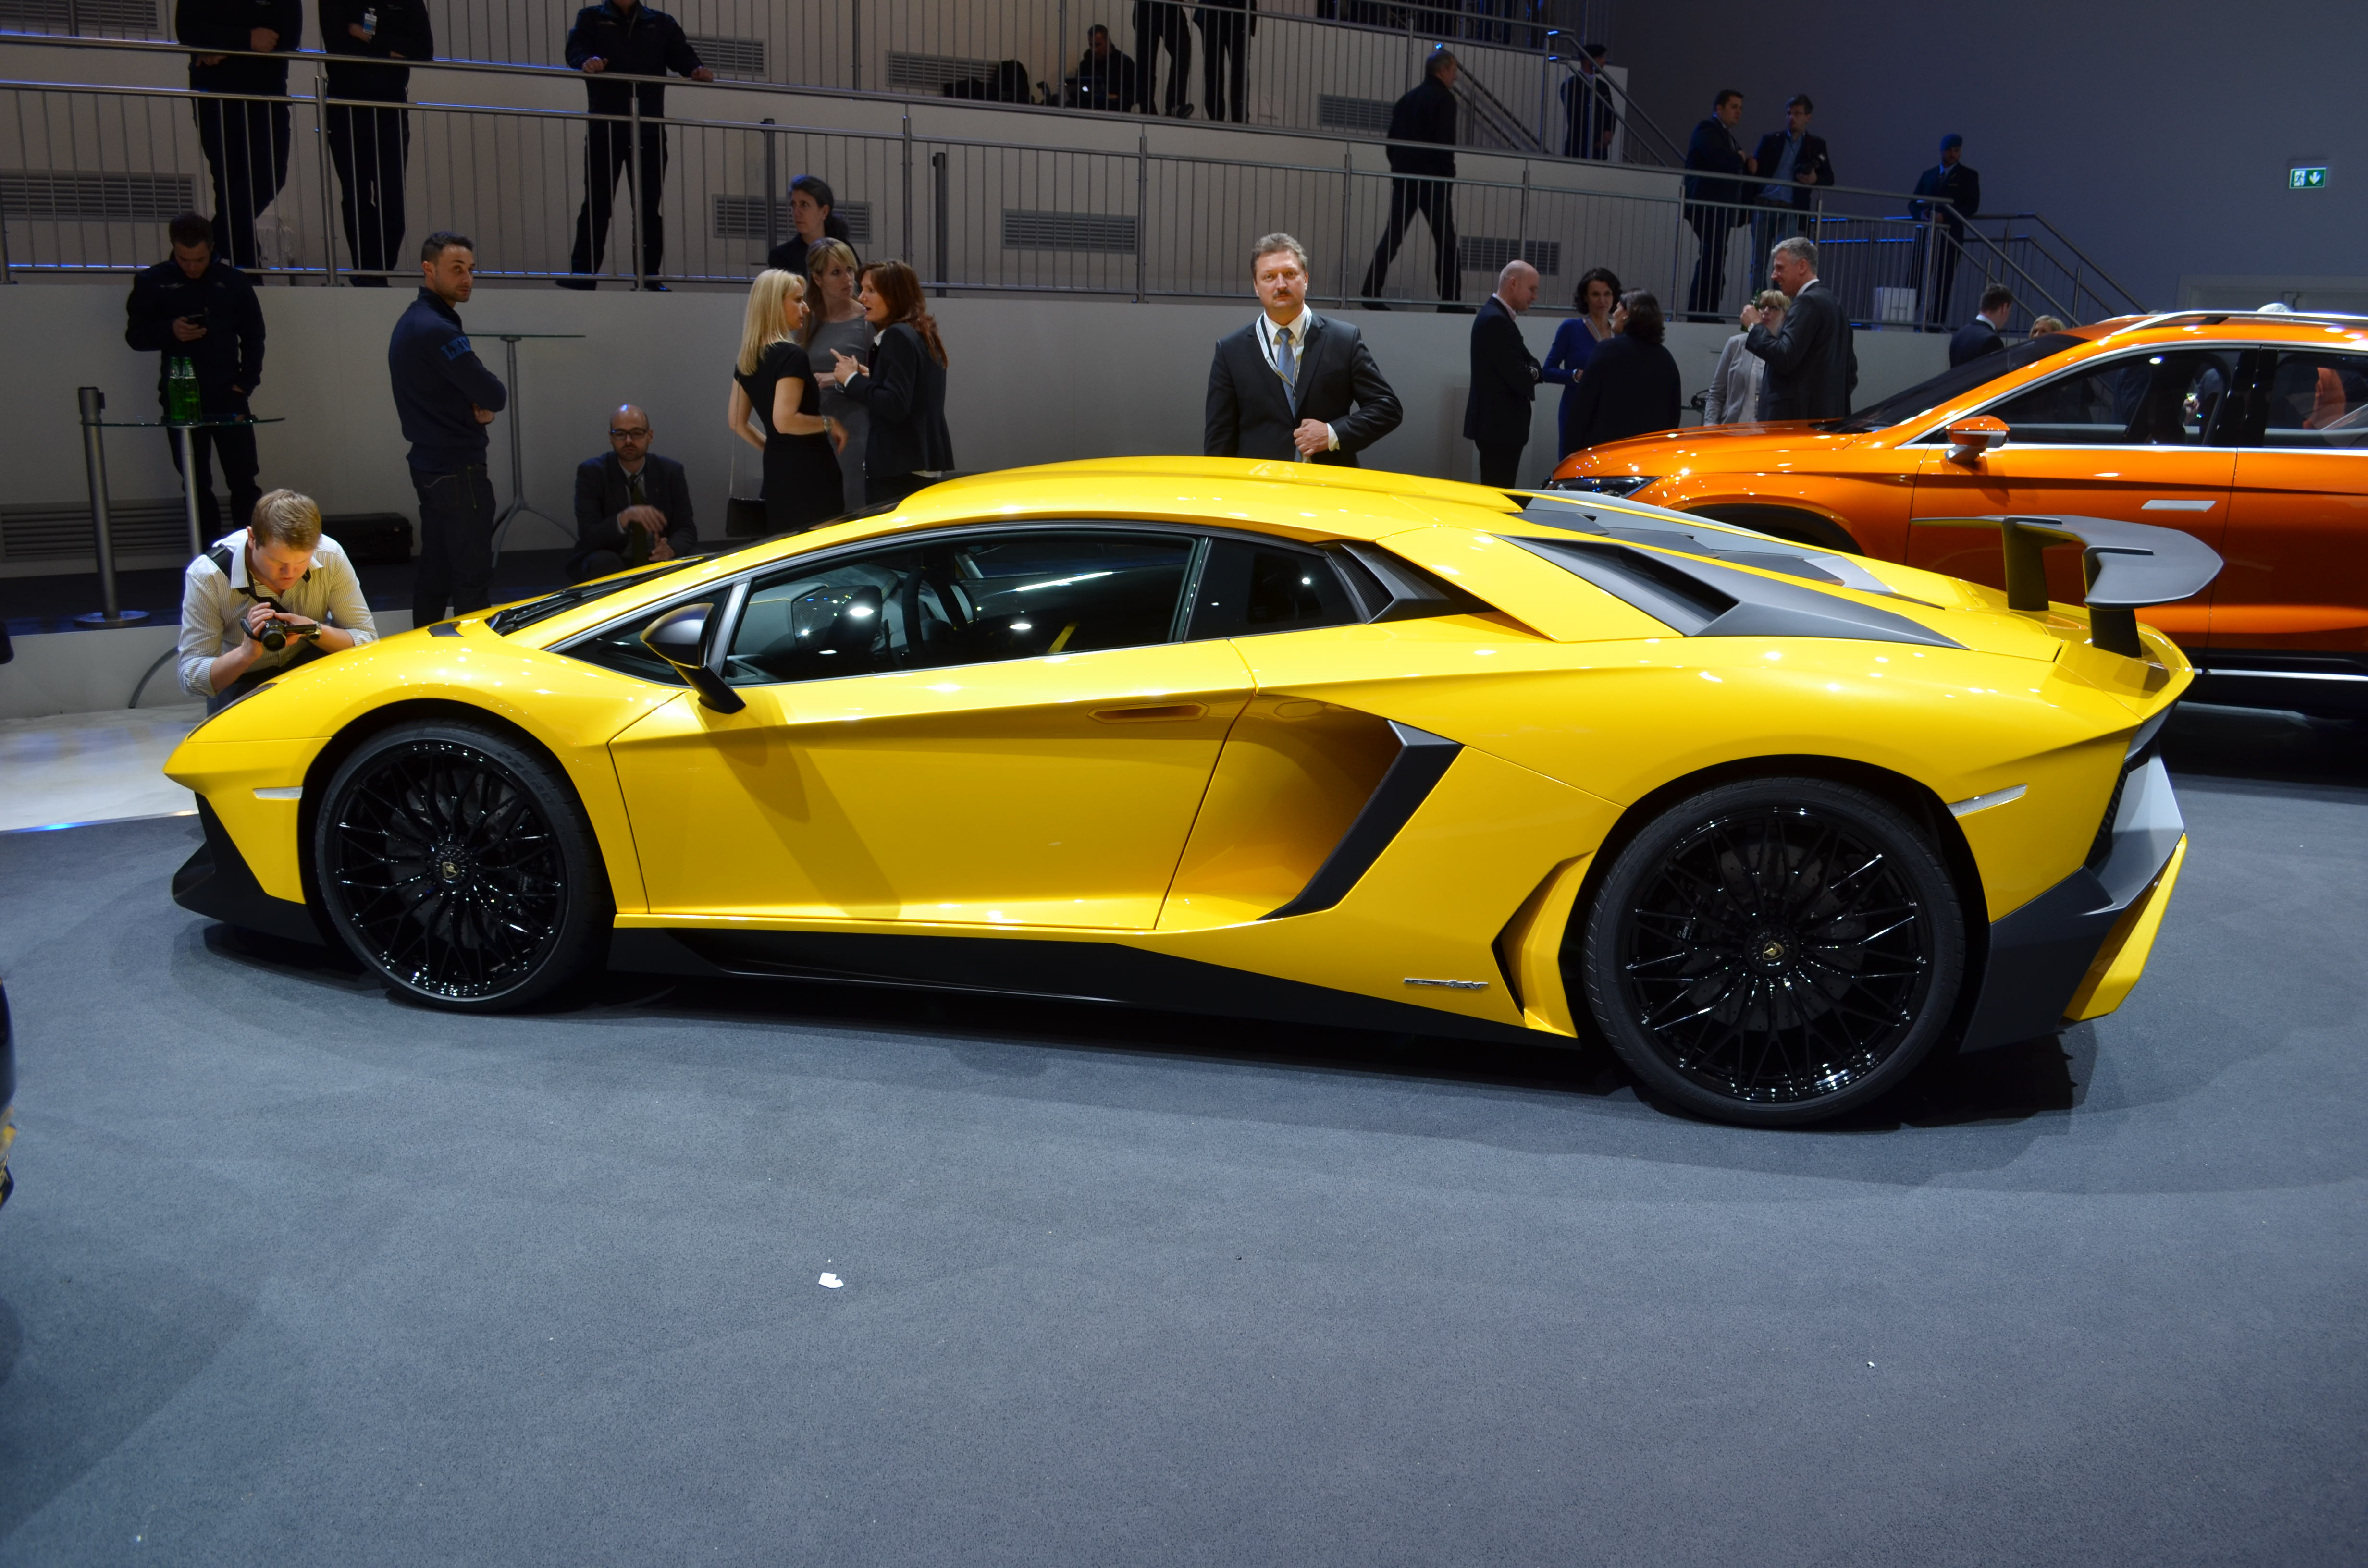 Lamborghini Centenario Lp770 4 Will Be New Hypercar